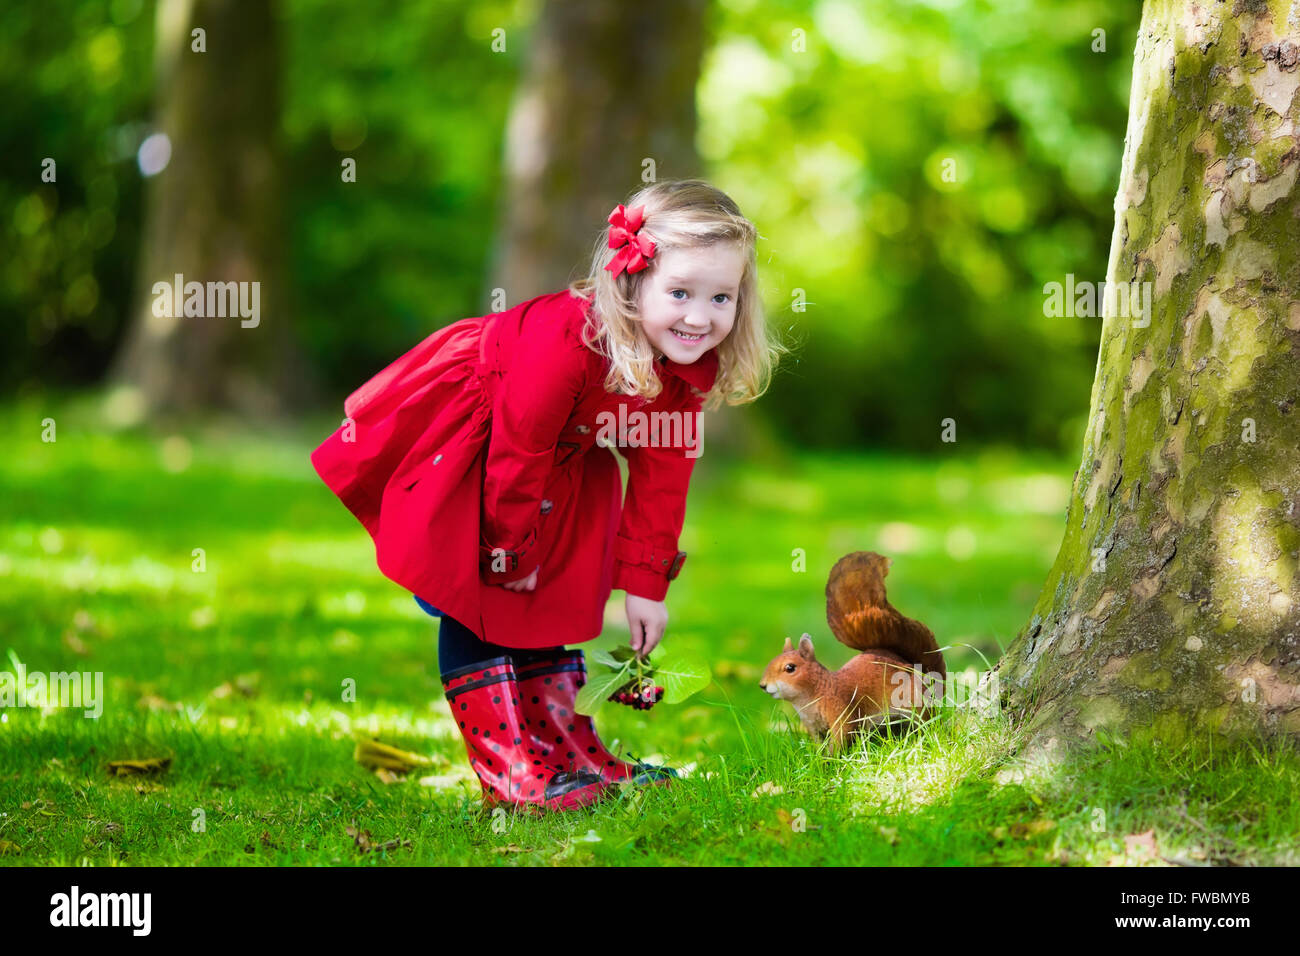 72f50c1fc1b2c Girl feeding squirrel in autumn park. Little girl in red trench coat and  rain boots watching wild animal in fall forest